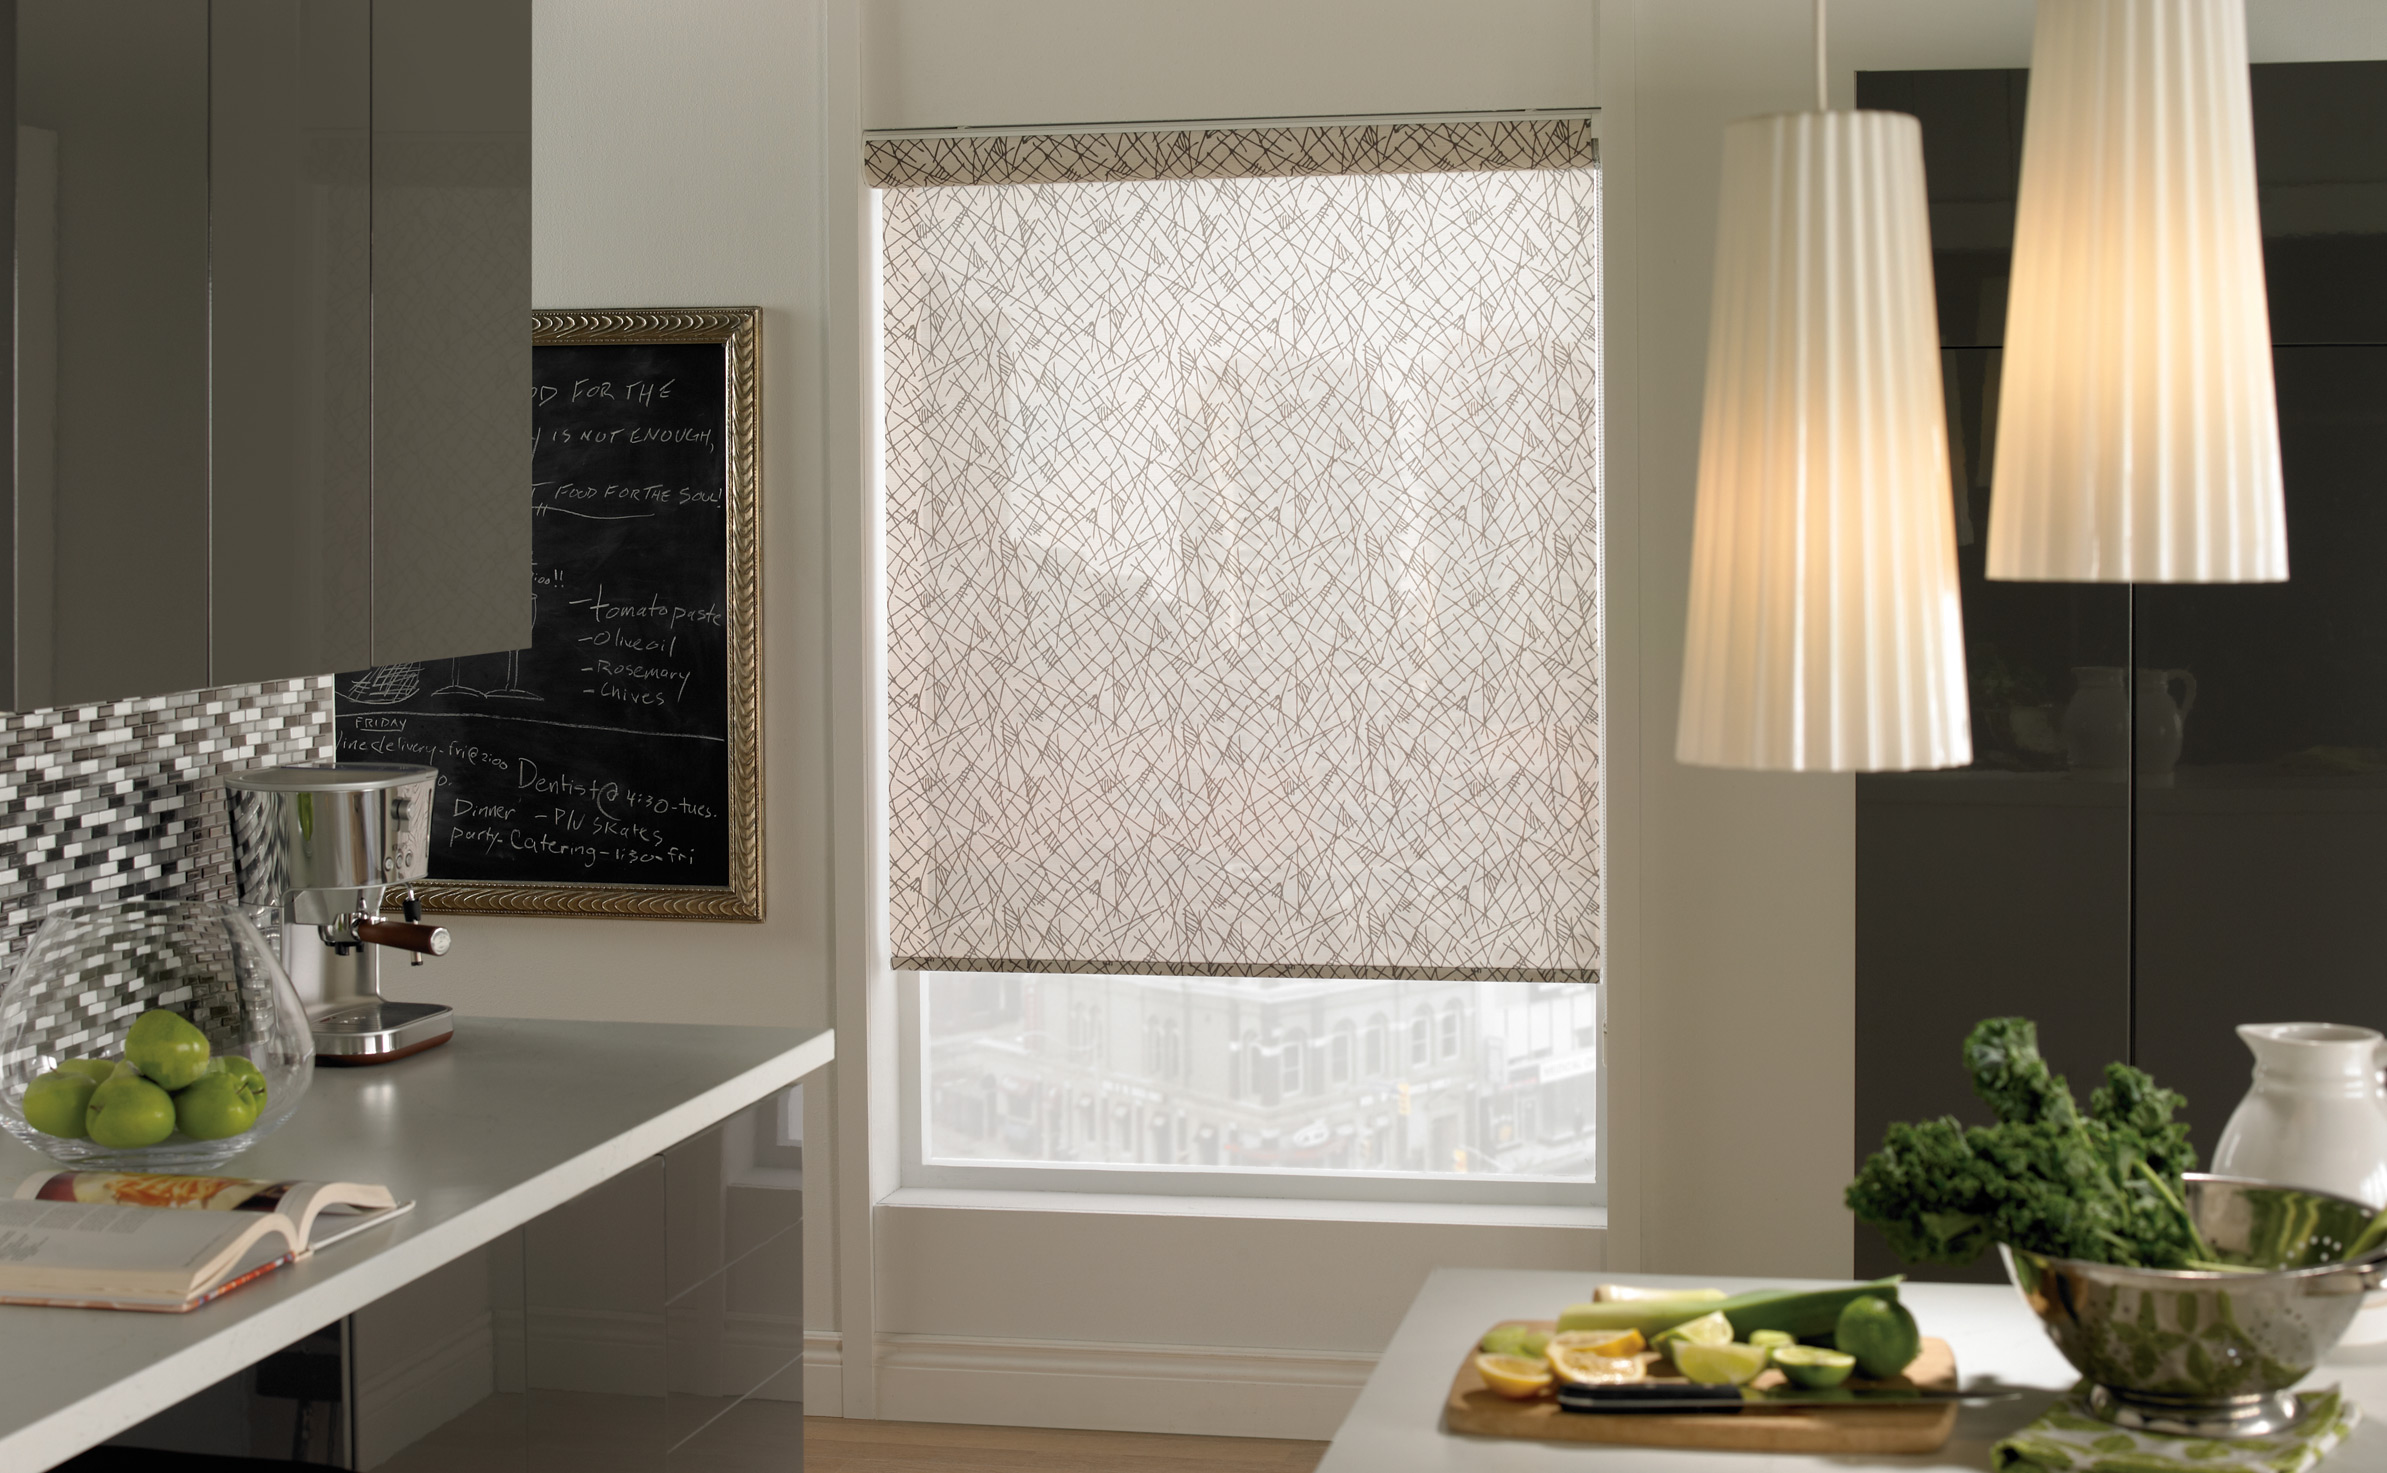 h shops s blinds and us floors yeager silhoutte homes